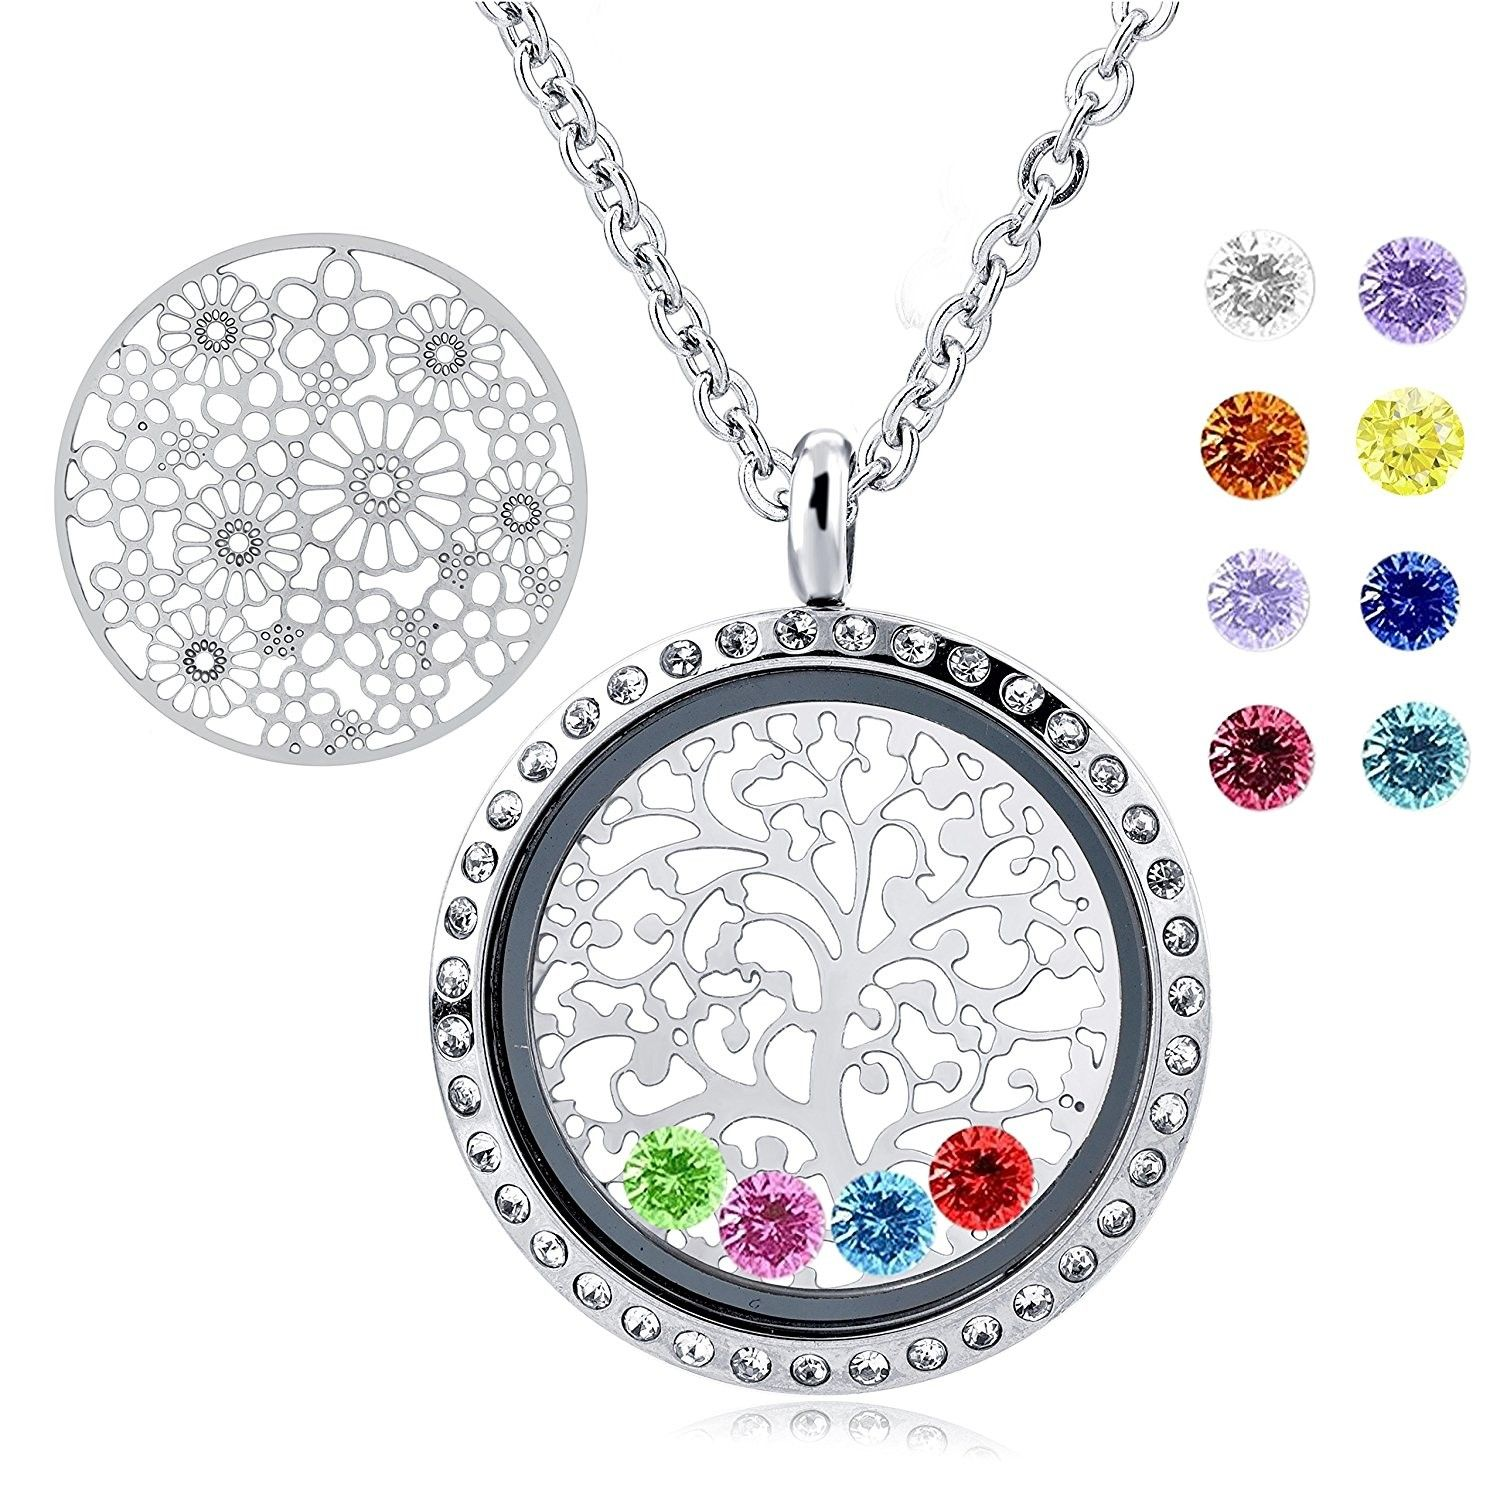 Family Tree of Life Floating Living Memory Locket Pendant Necklace with Birthstone All Charms Included